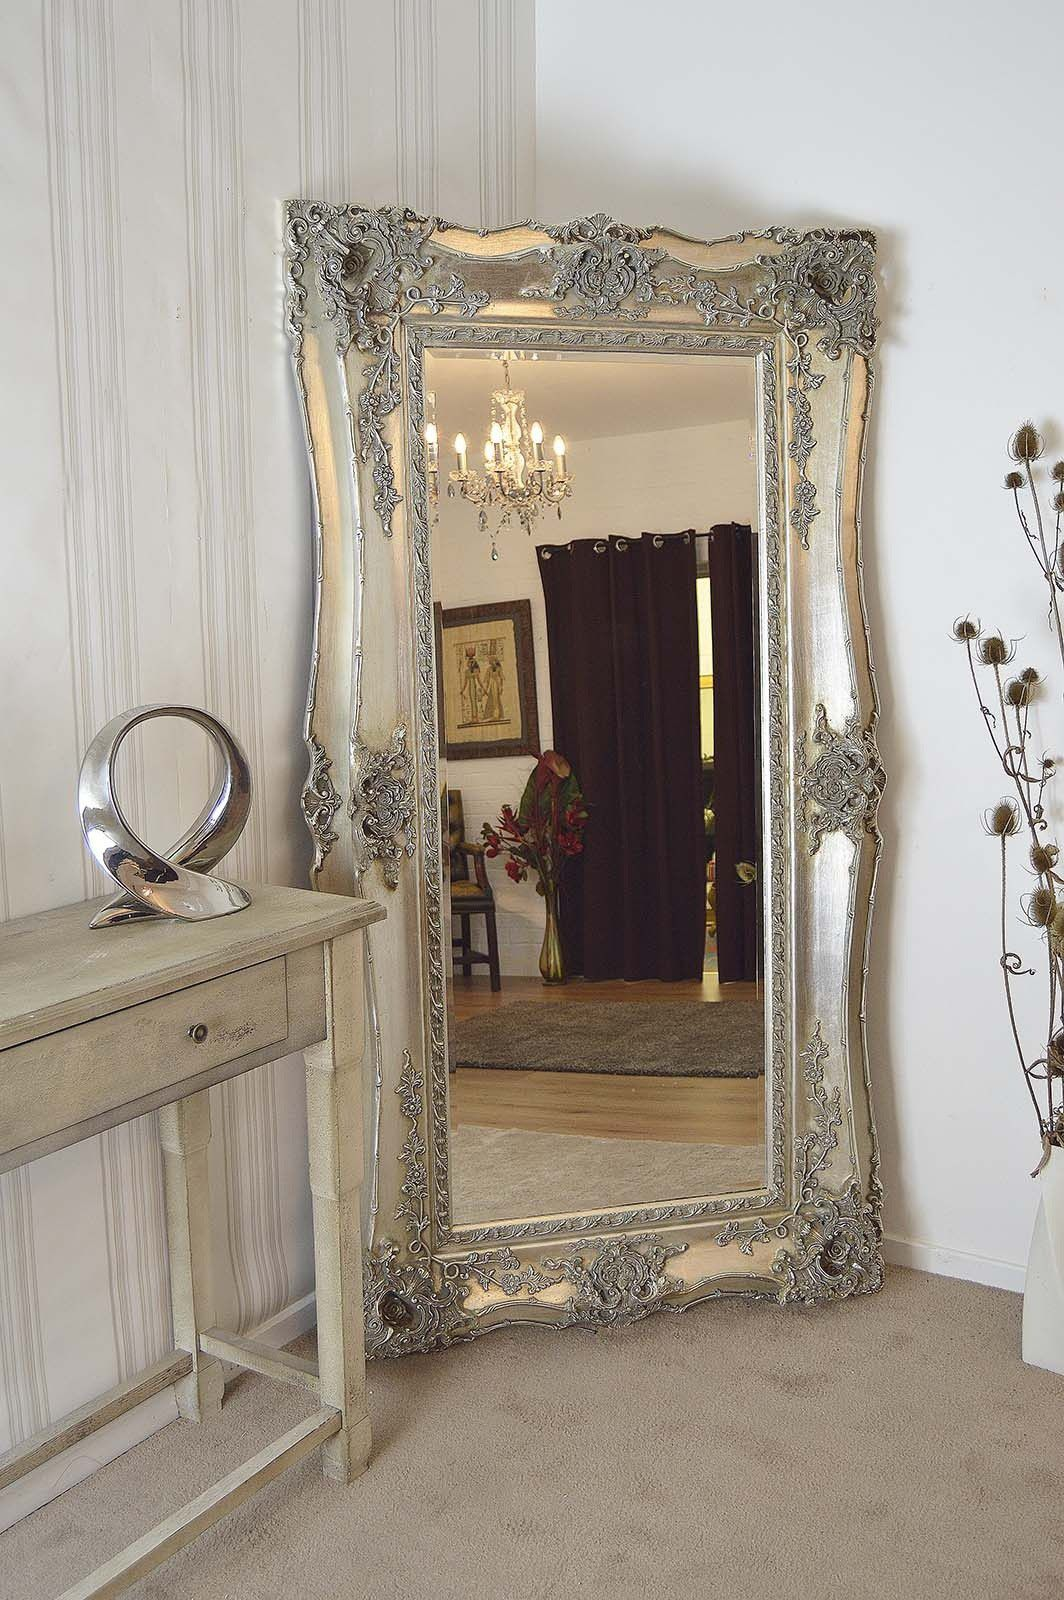 Extra large mirrors - 10 tips for choosing | Inovodecor.com